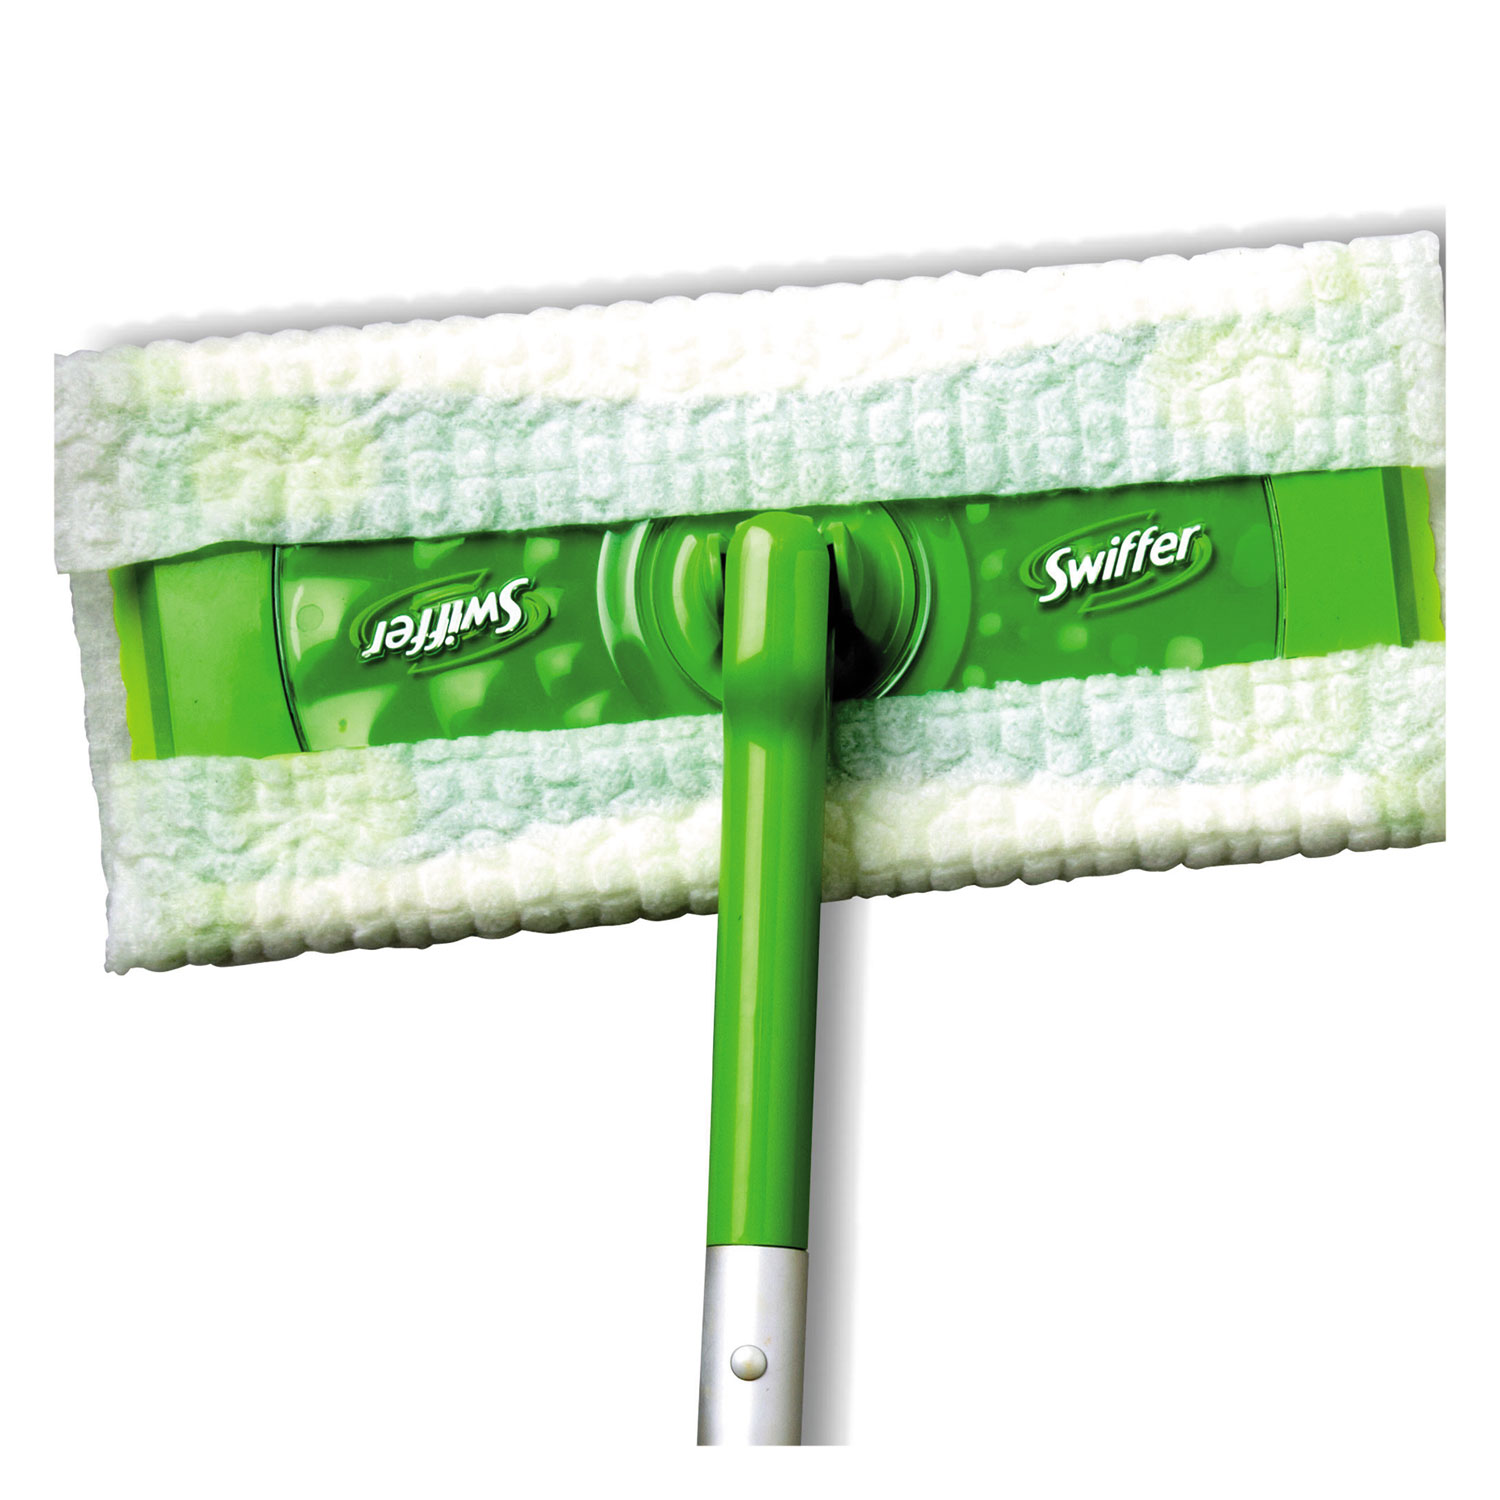 Pgc95532ct Swiffer Wet Refill Cloths Zuma